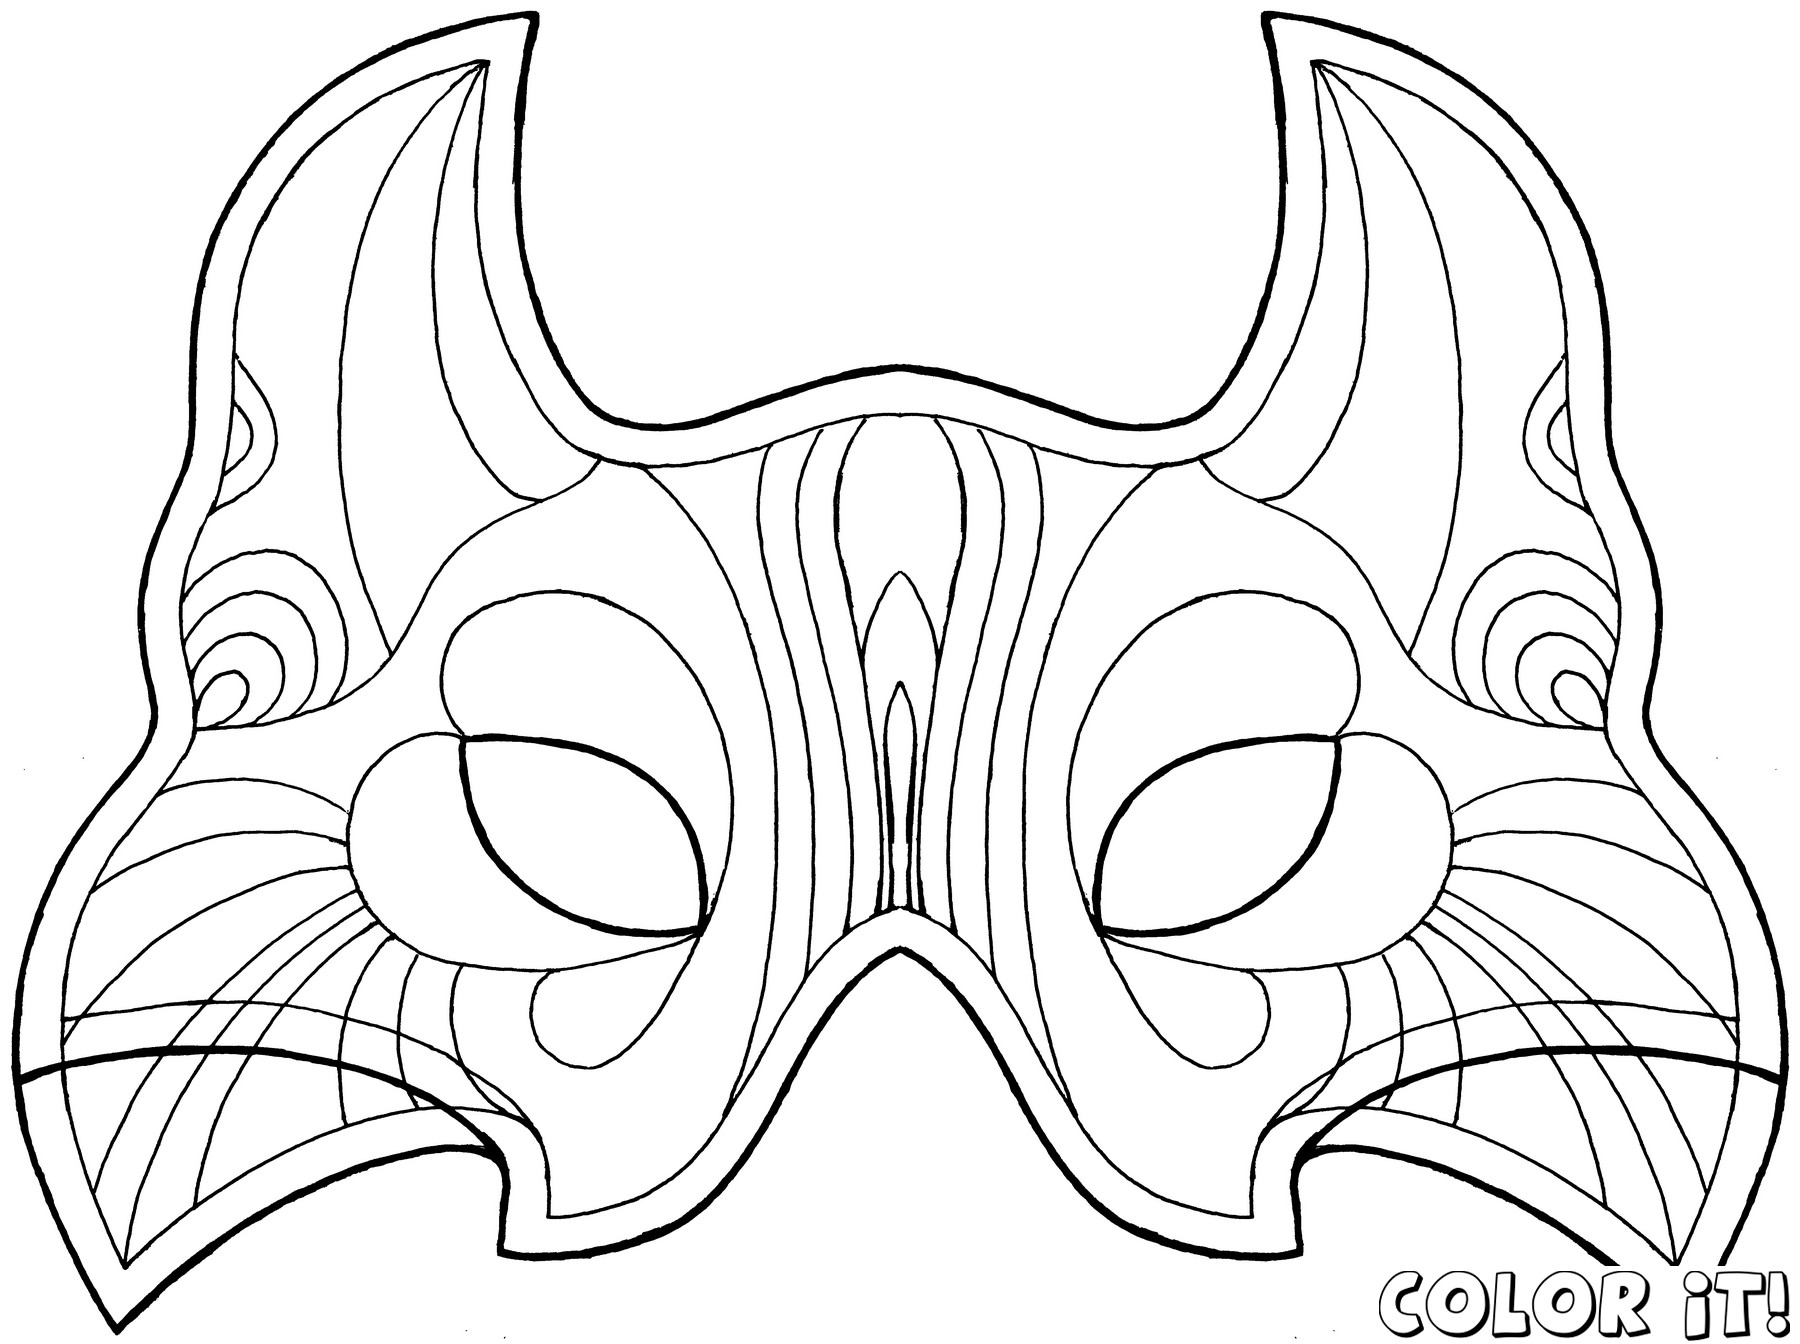 1800x1344 Cat Mask Coloring Page Tgm Sports New